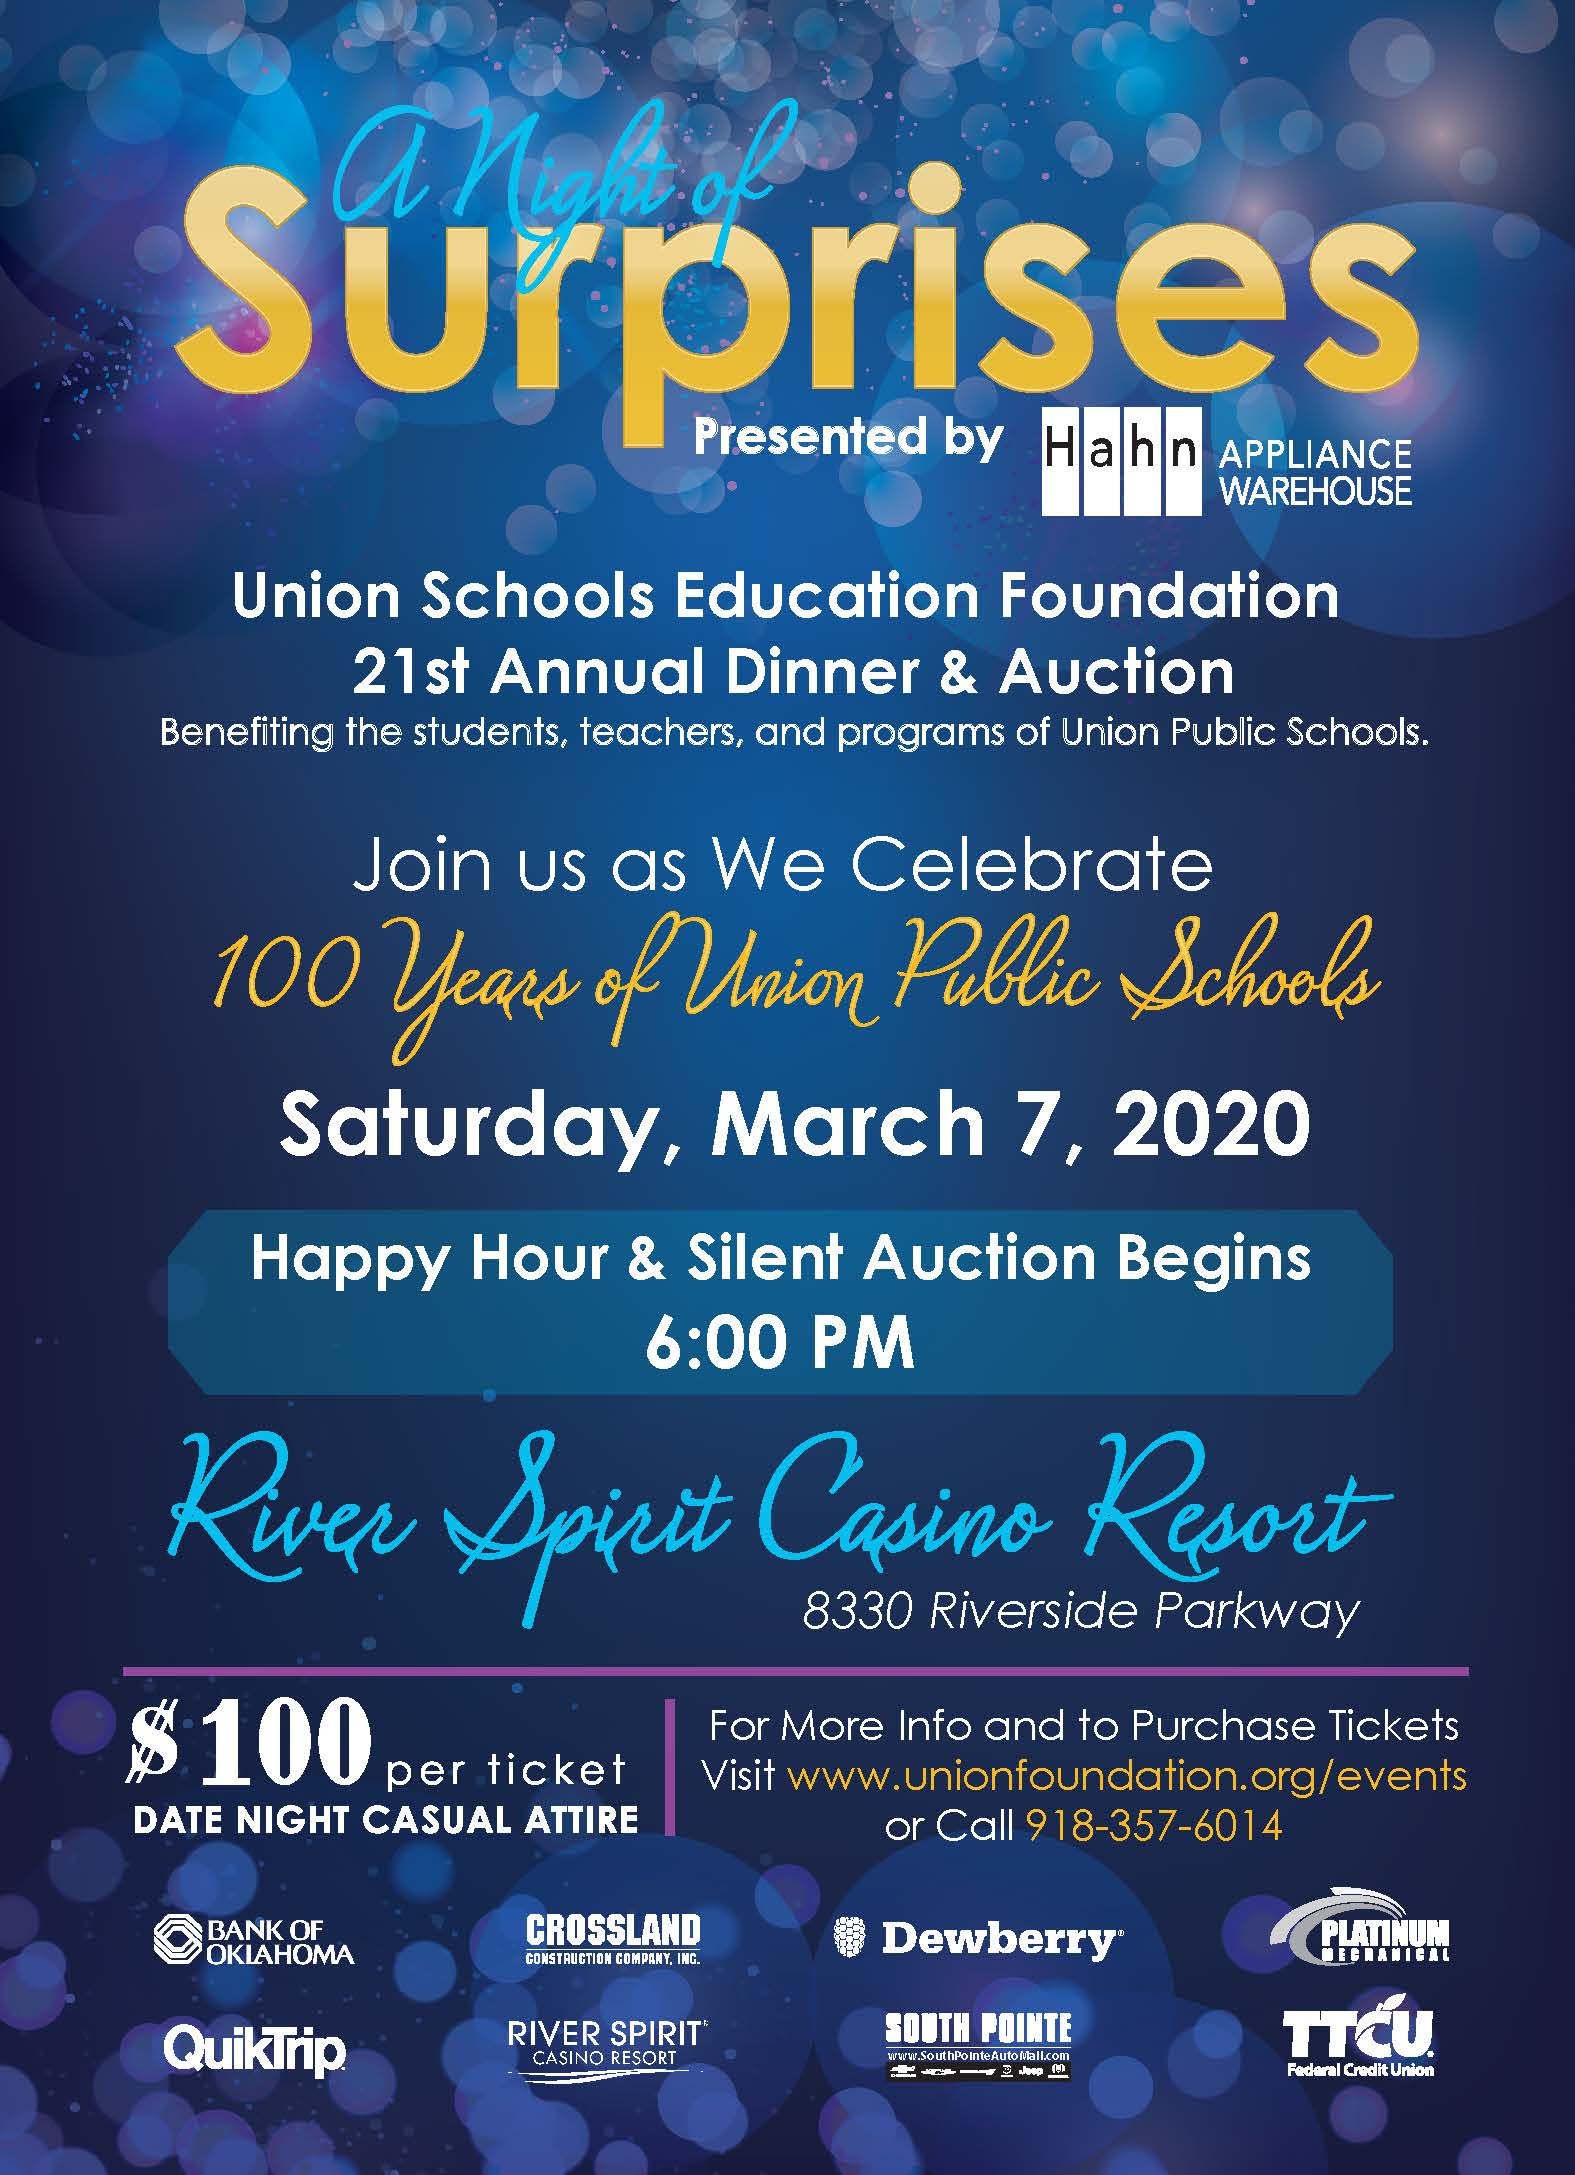 The Union Schools Education Foundation 21stAnnual Dinner & Auction –A Night of Surprises –will be at 6:30 p.m. Saturday, March 7, at River Spirit Casino Resort.